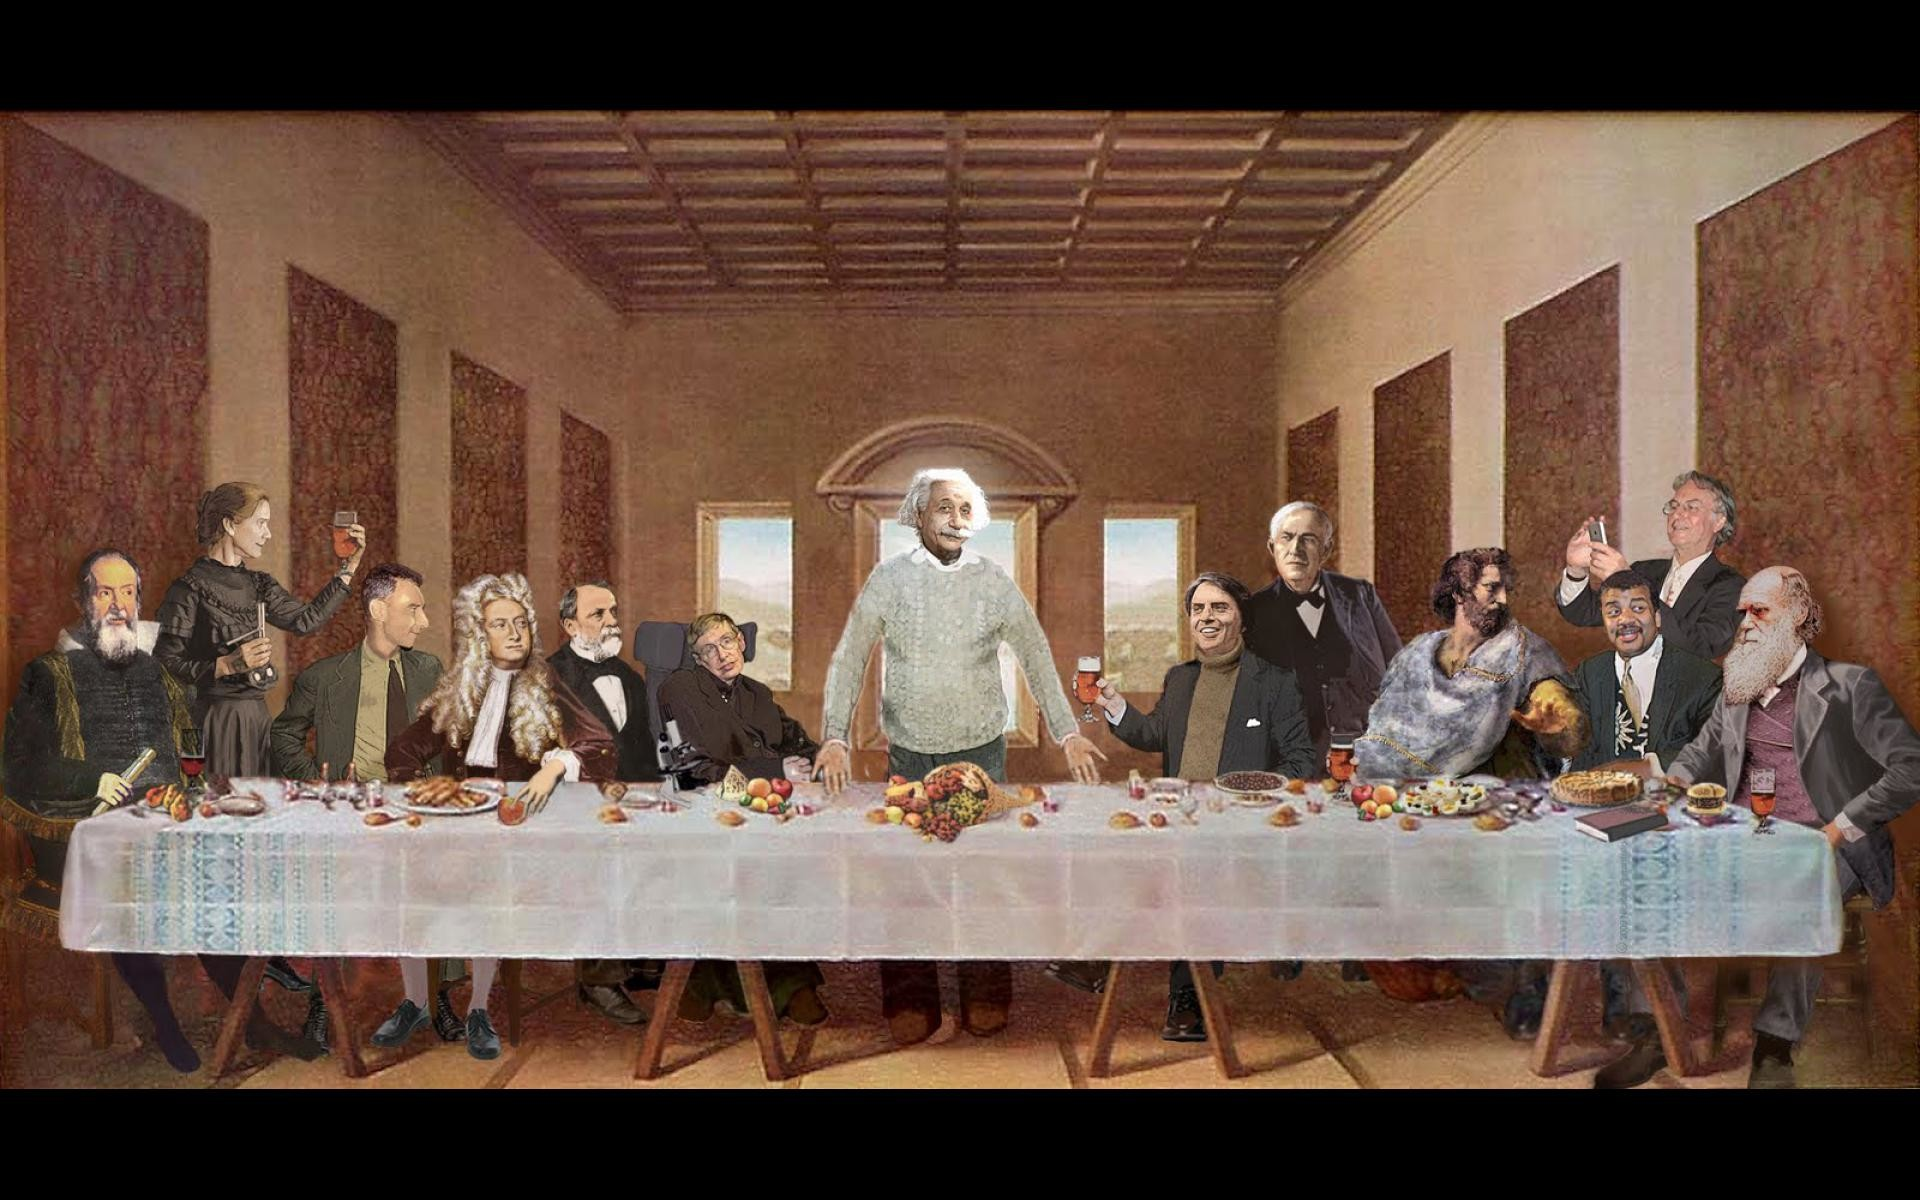 Physics images last-supper-scientists- HD wallpaper and background photos